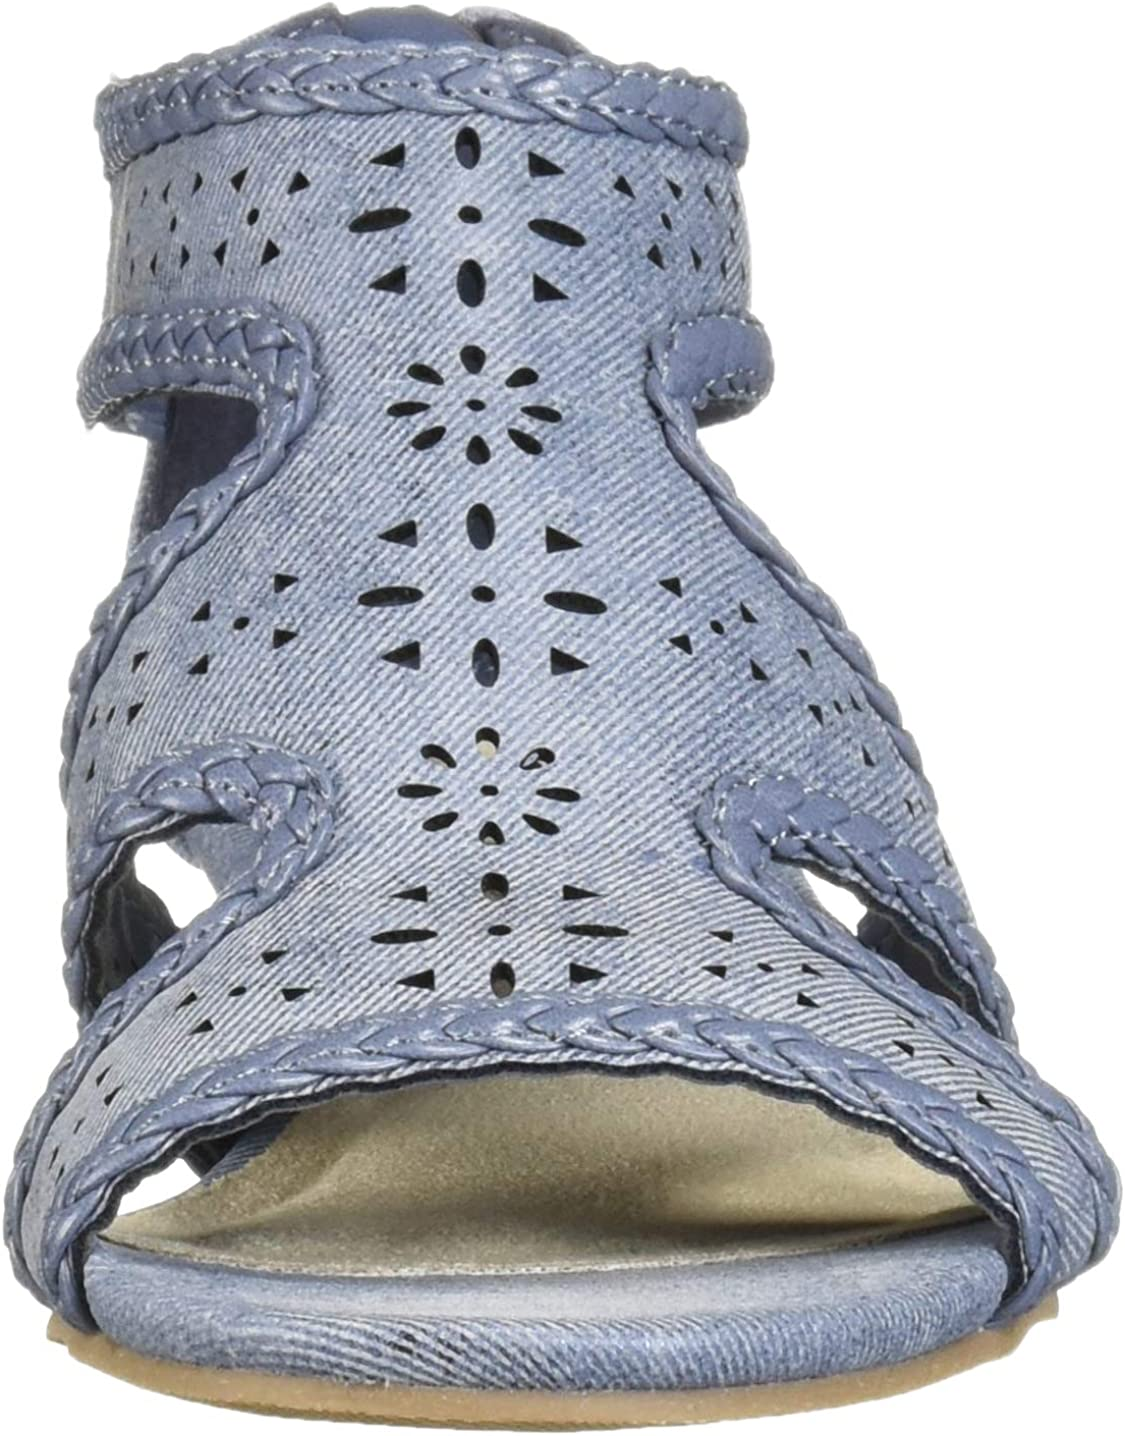 Easy Street Womens Thelma Dress Casual Sandal with Back Zipper Wedge